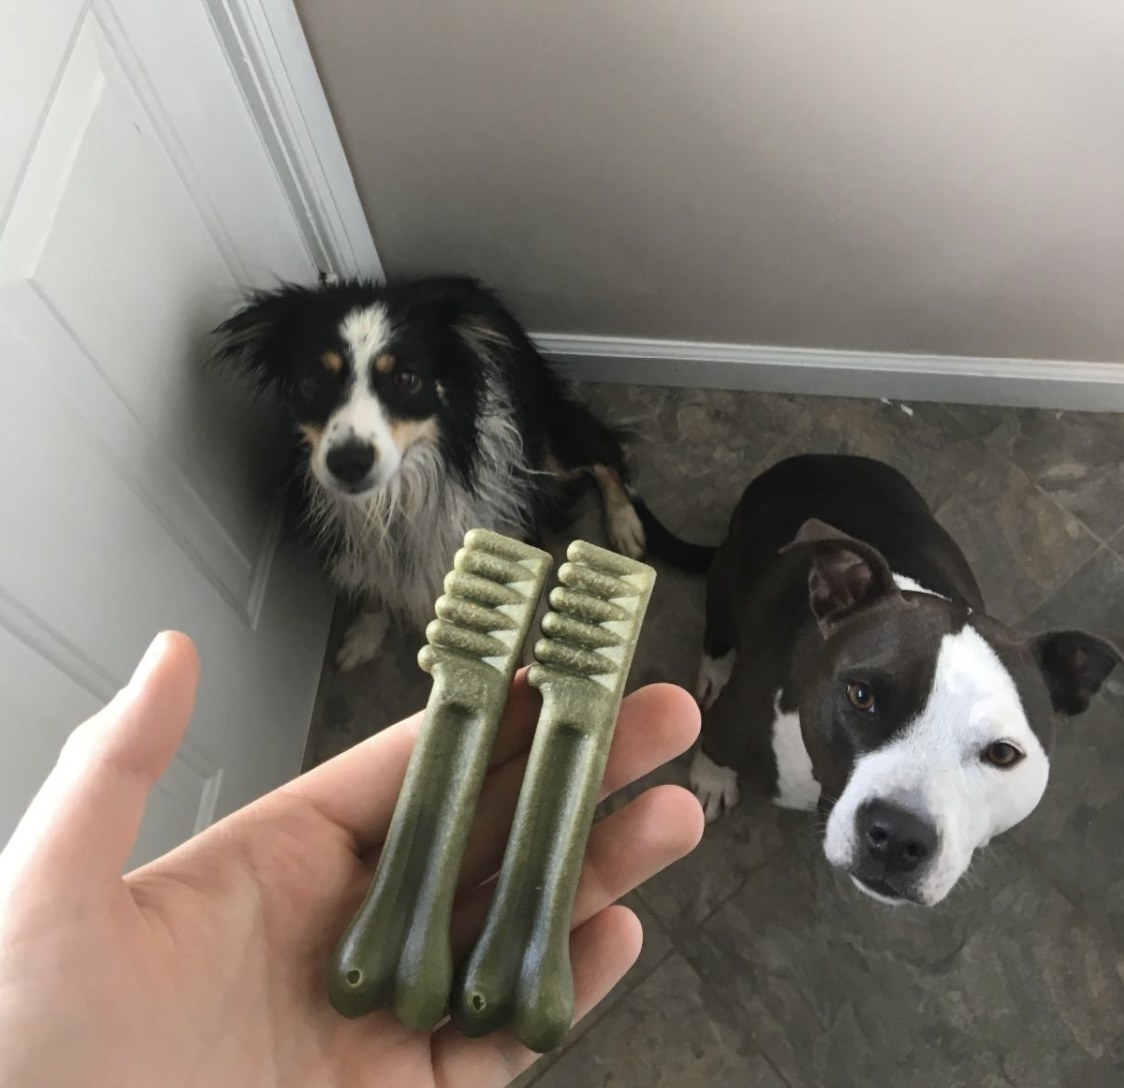 an owner holding two Greenies toothbrush-shaped treats in front of their two dogs